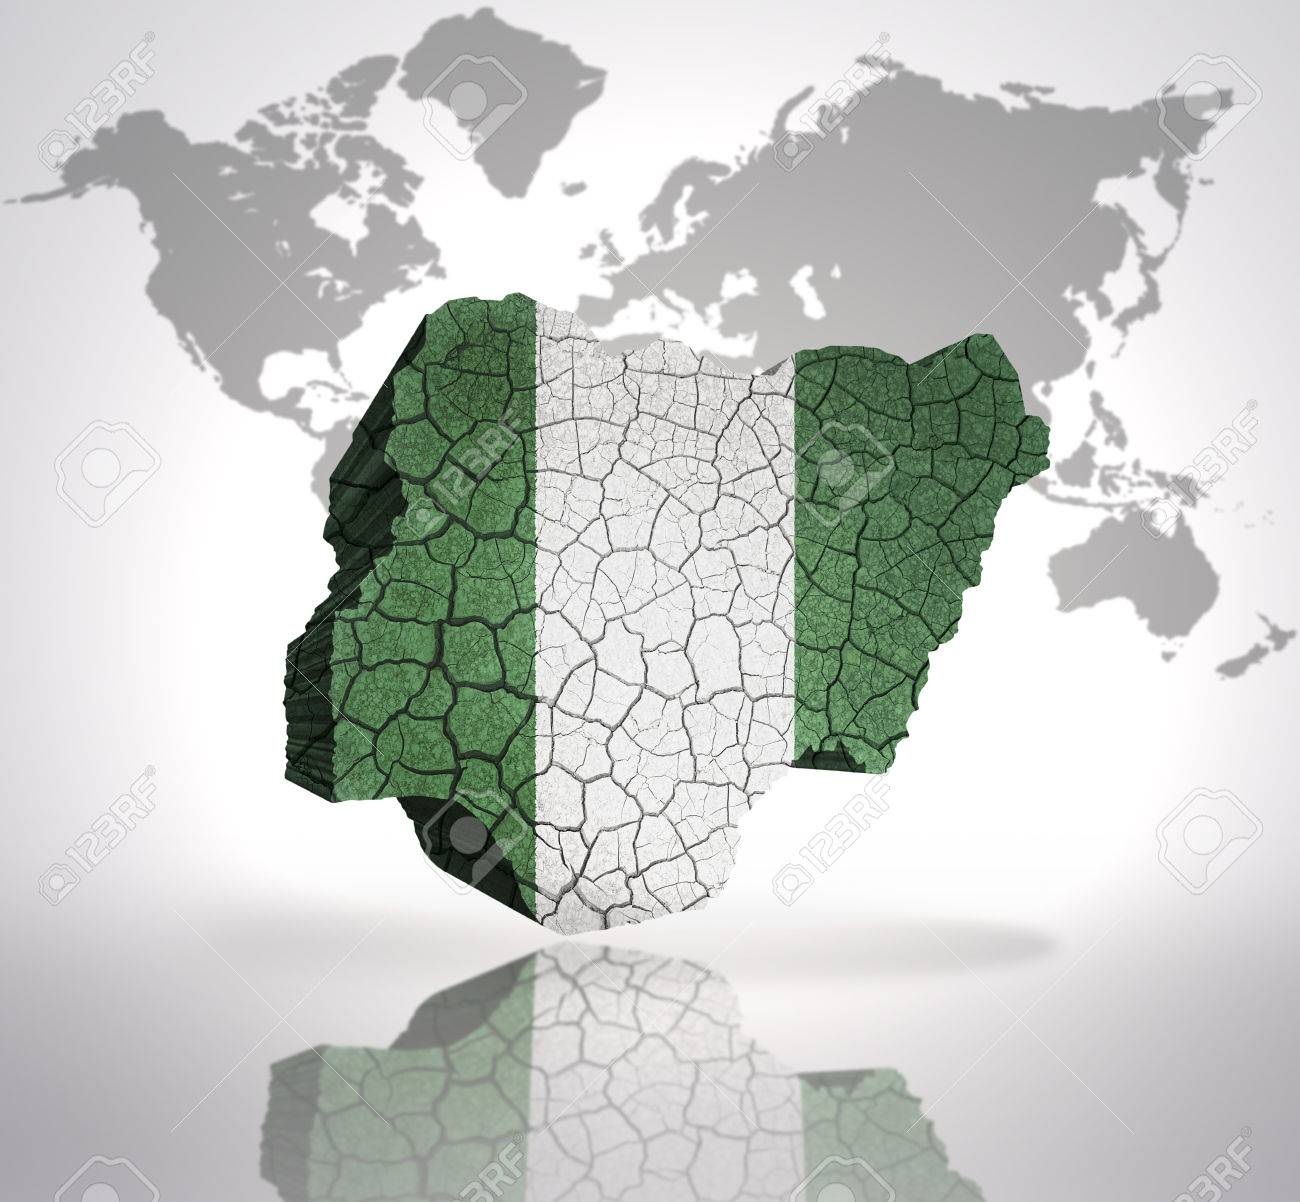 Map of nigeria with nigerian flag on a world map background stock map of nigeria with nigerian flag on a world map background stock photo 33005697 gumiabroncs Gallery